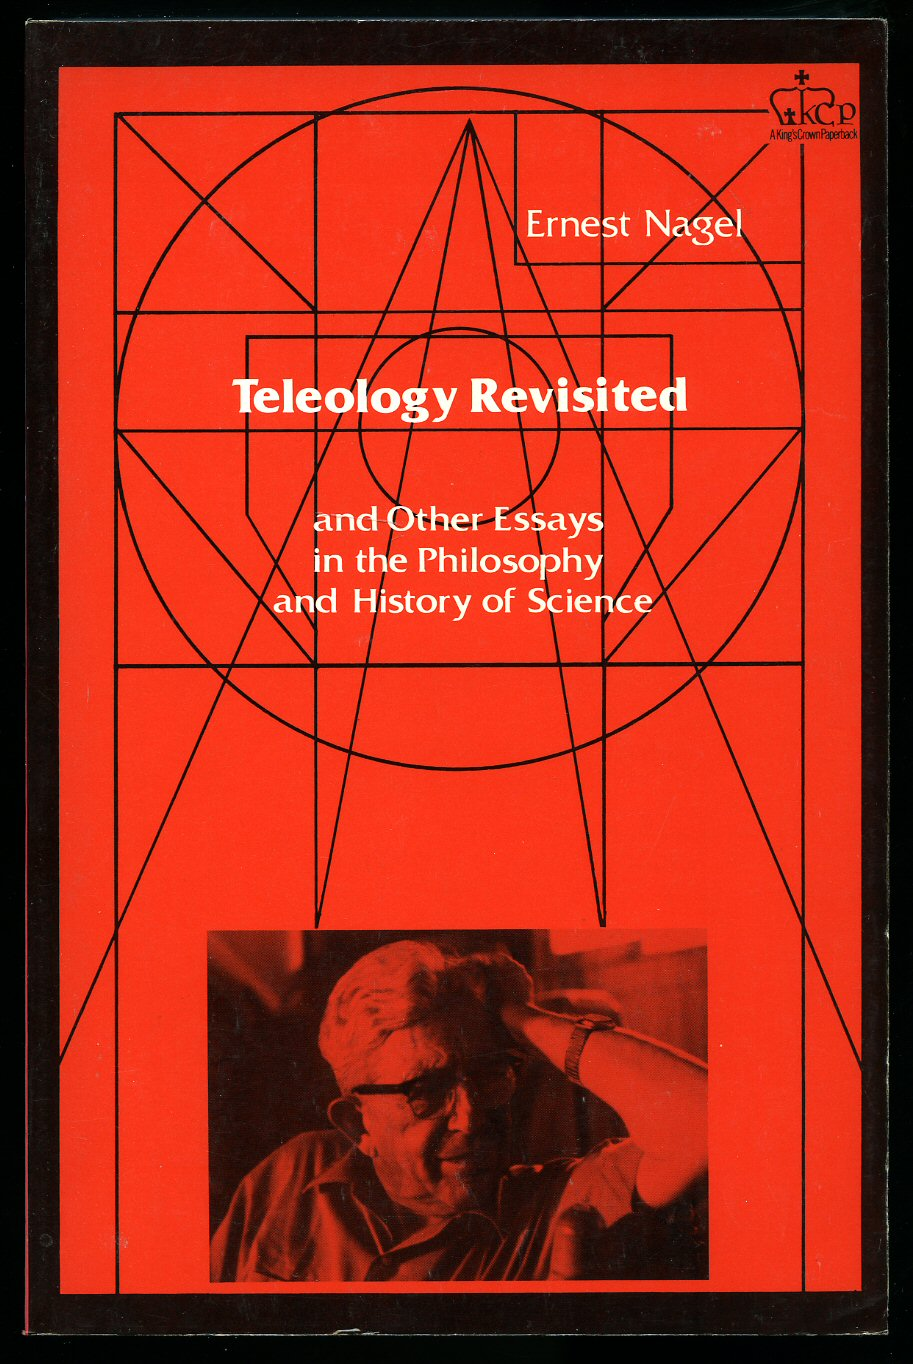 essays in the history and philosophy of science The book genesis redux: essays in the history and philosophy of artificial life, edited by jessica riskin is published by university of chicago press.